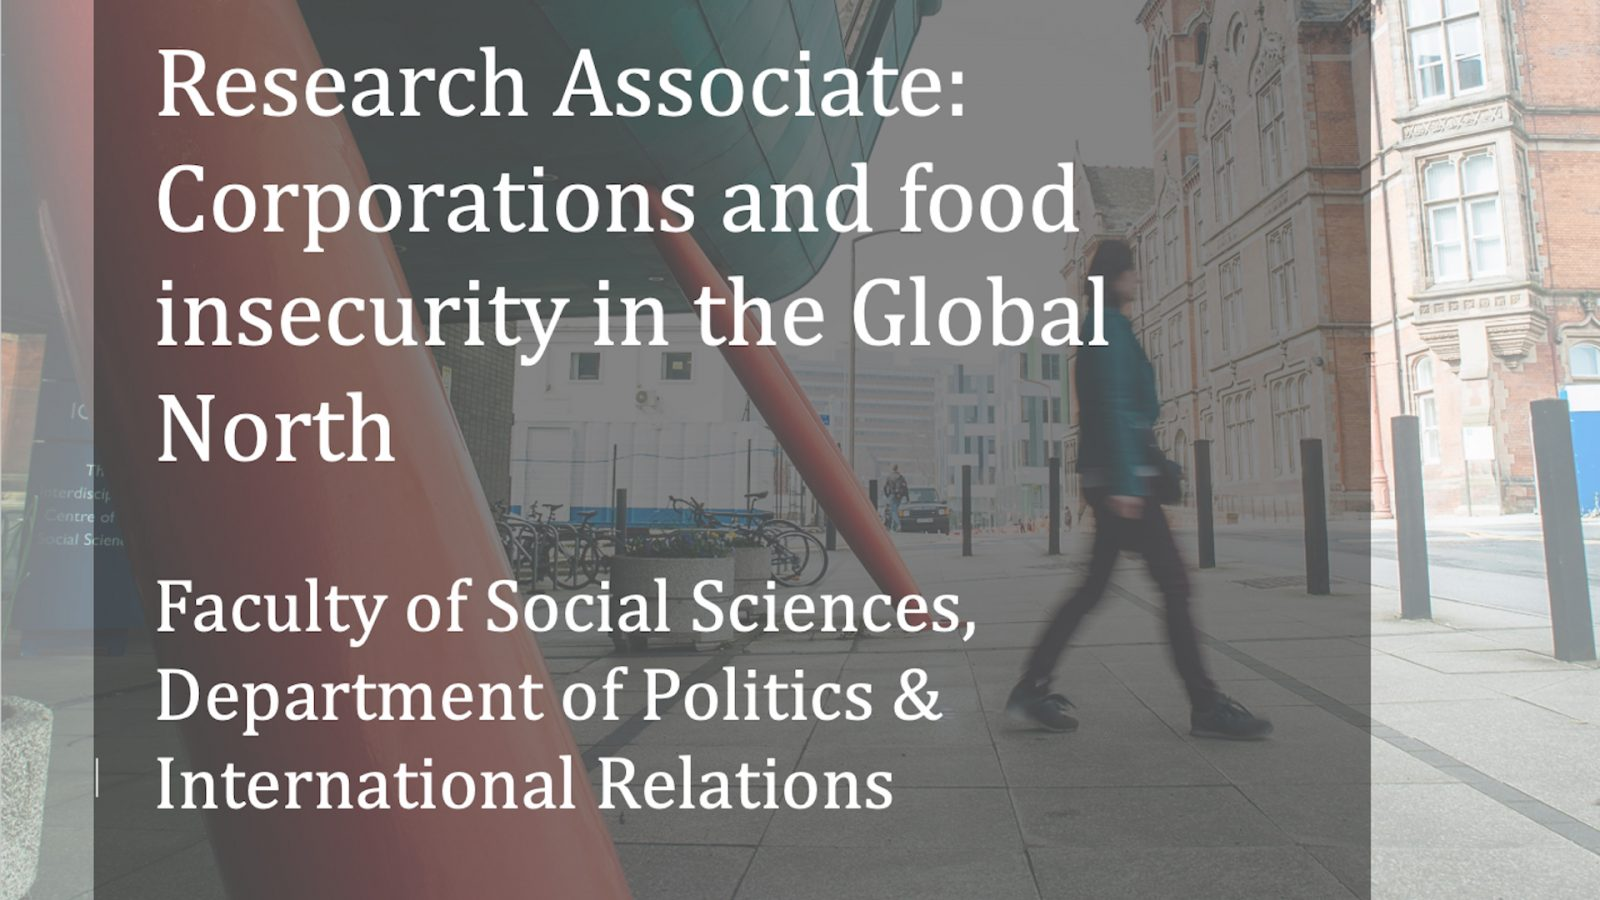 Research Associate: Corporations and food insecurity in the Global North